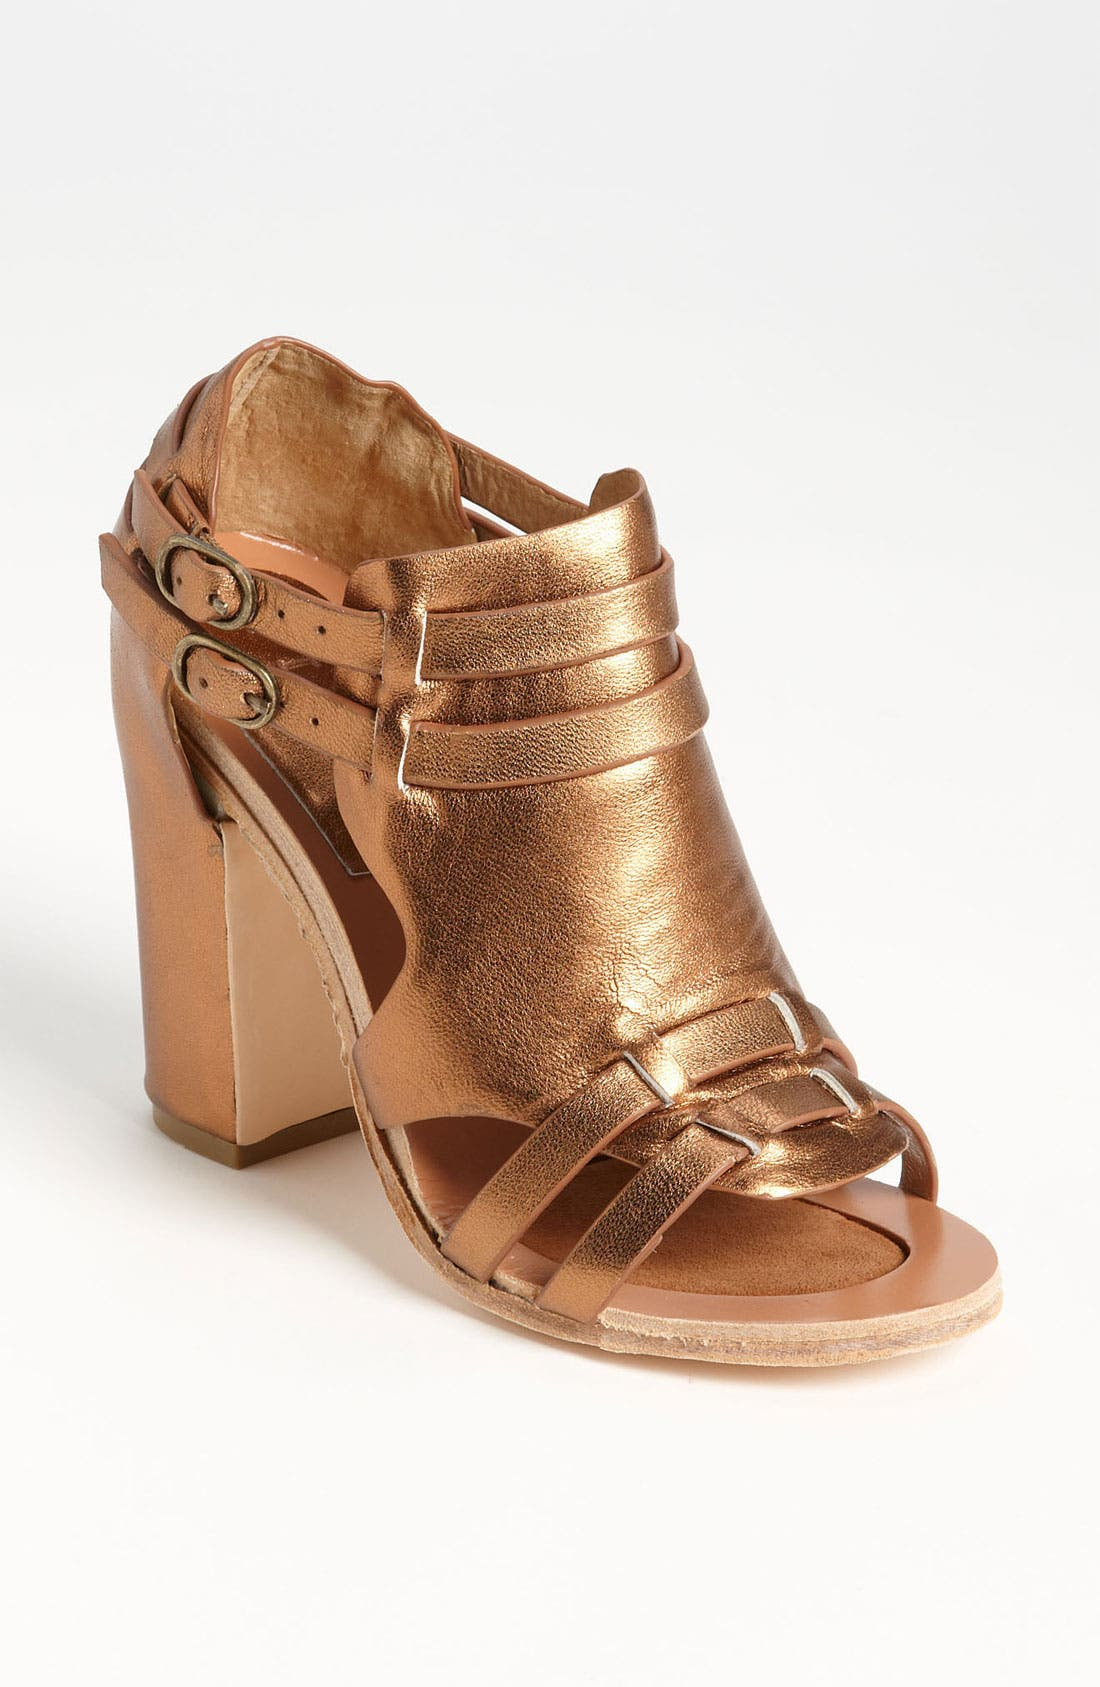 Alternate Image 1 Selected - Fiel 'Young' Sandal